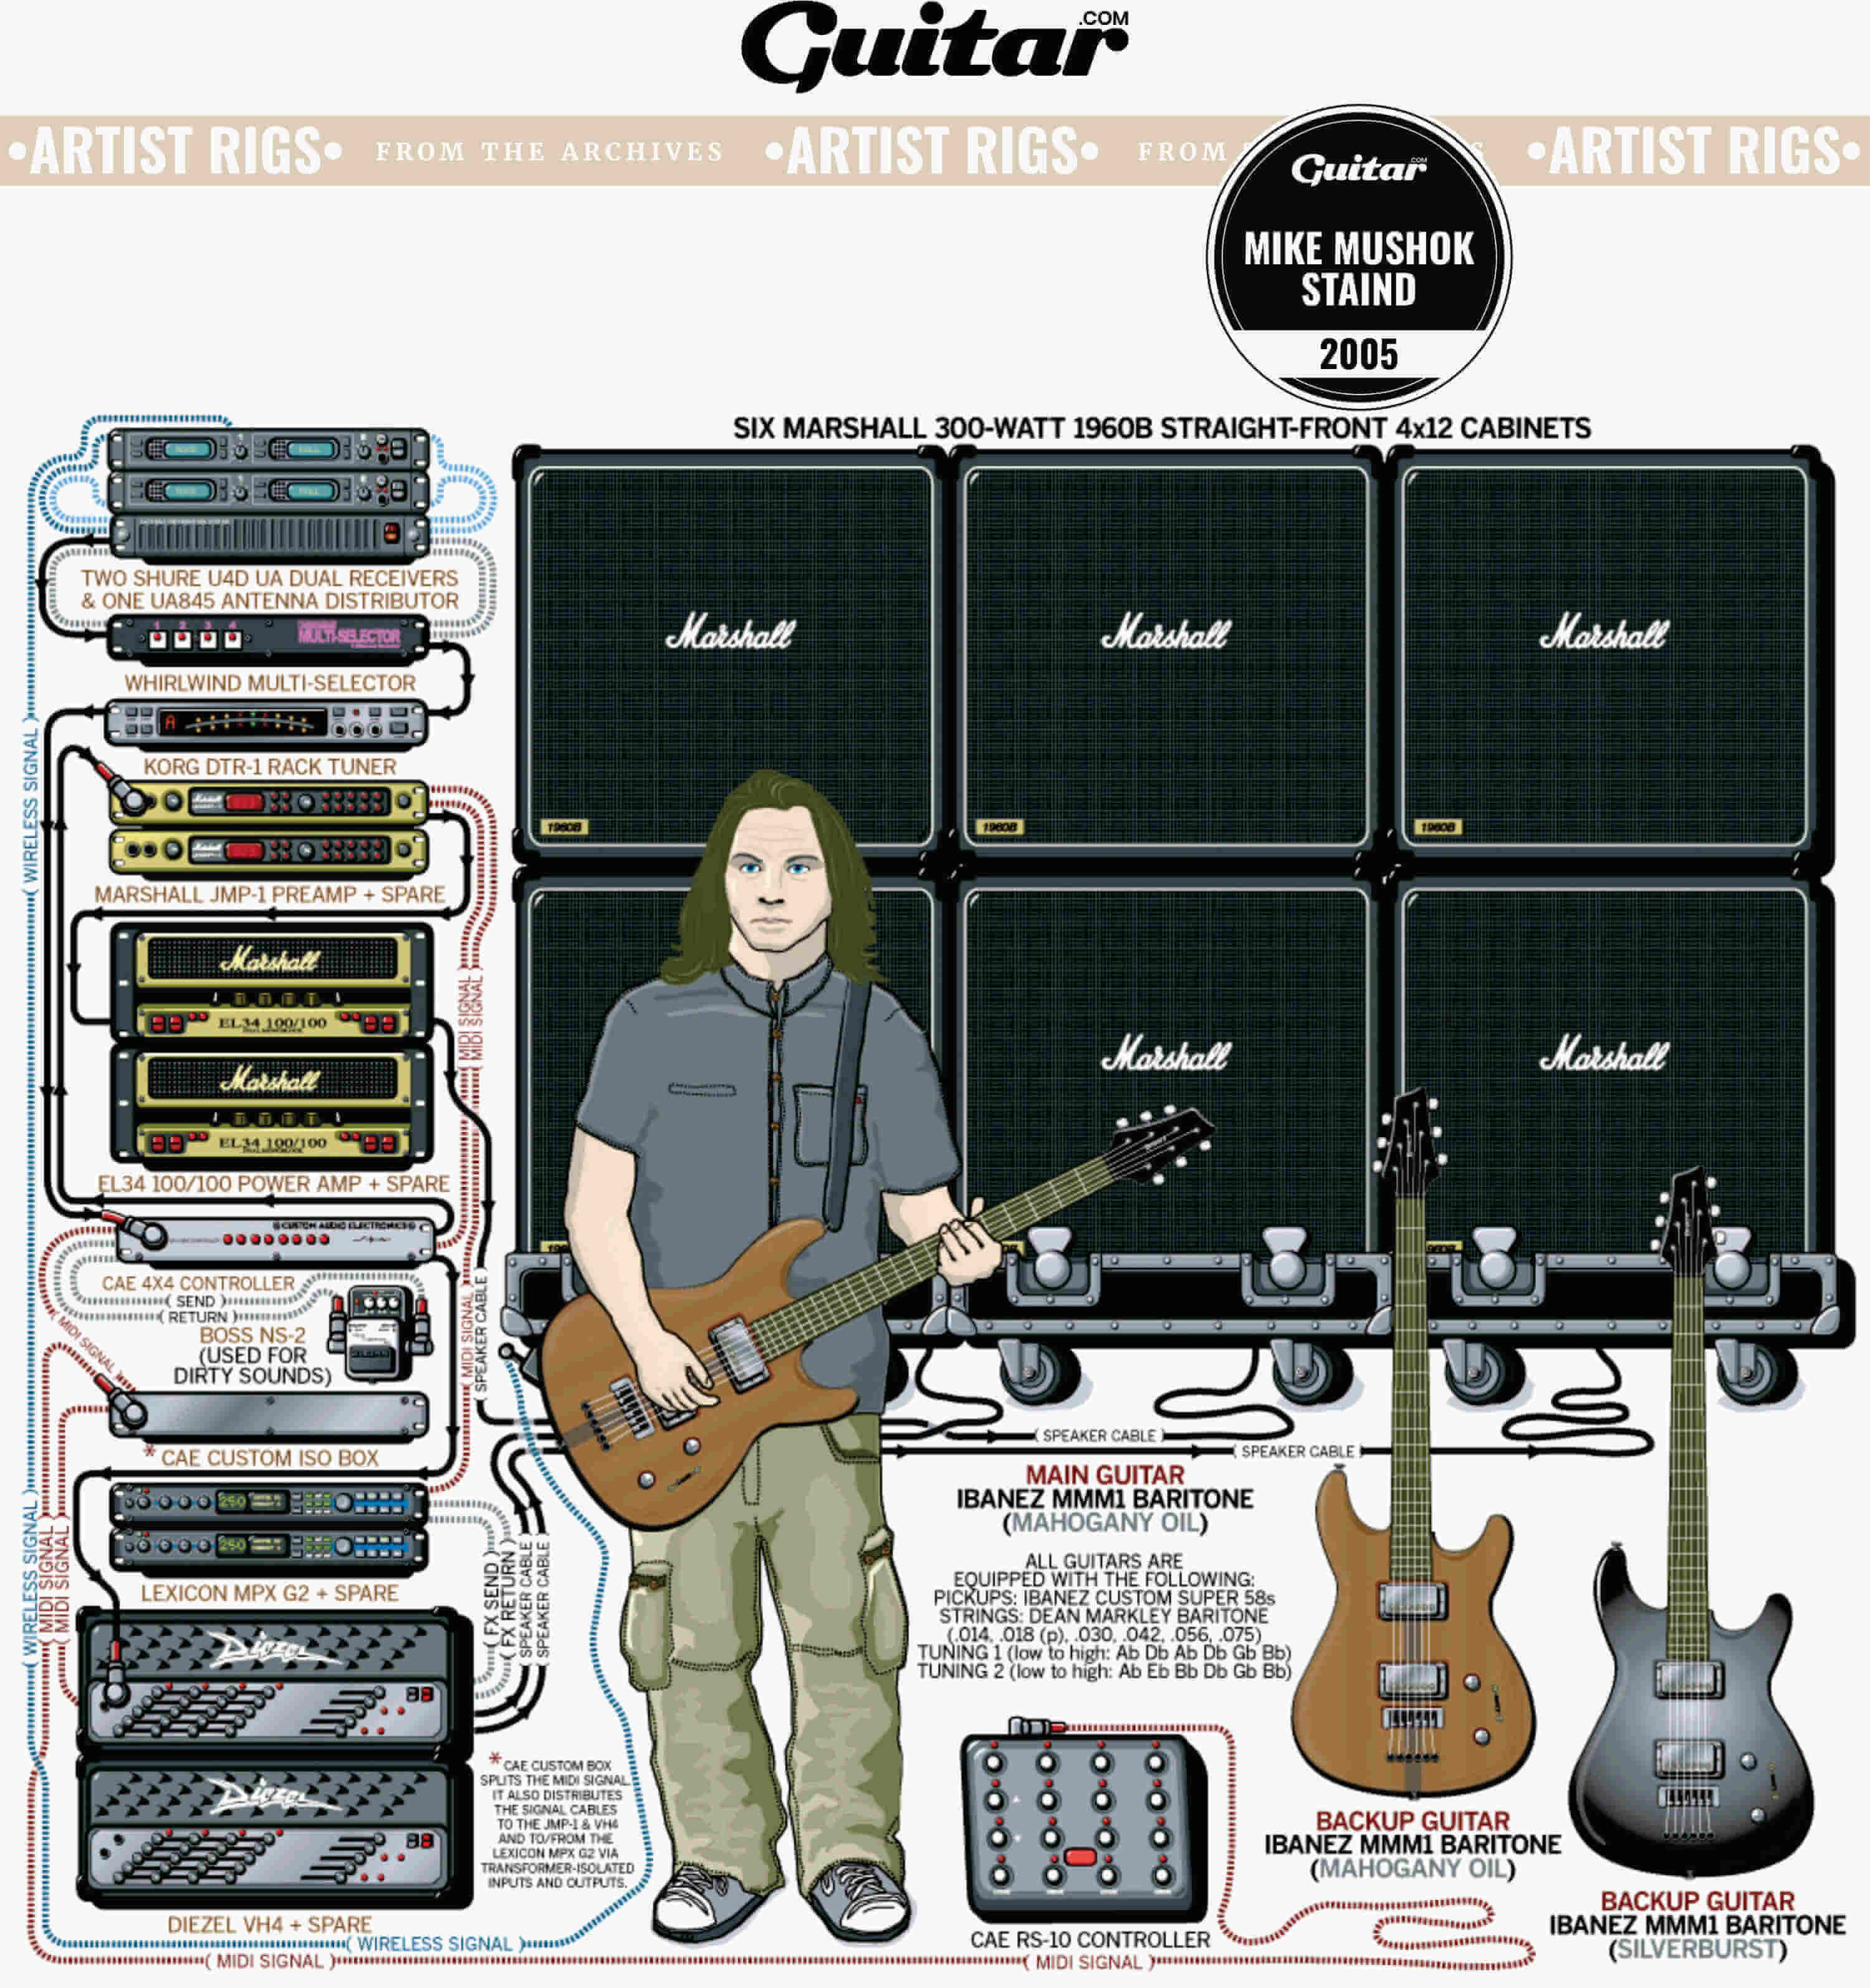 Rig Diagram: Mike Mushok, Staind (2005)